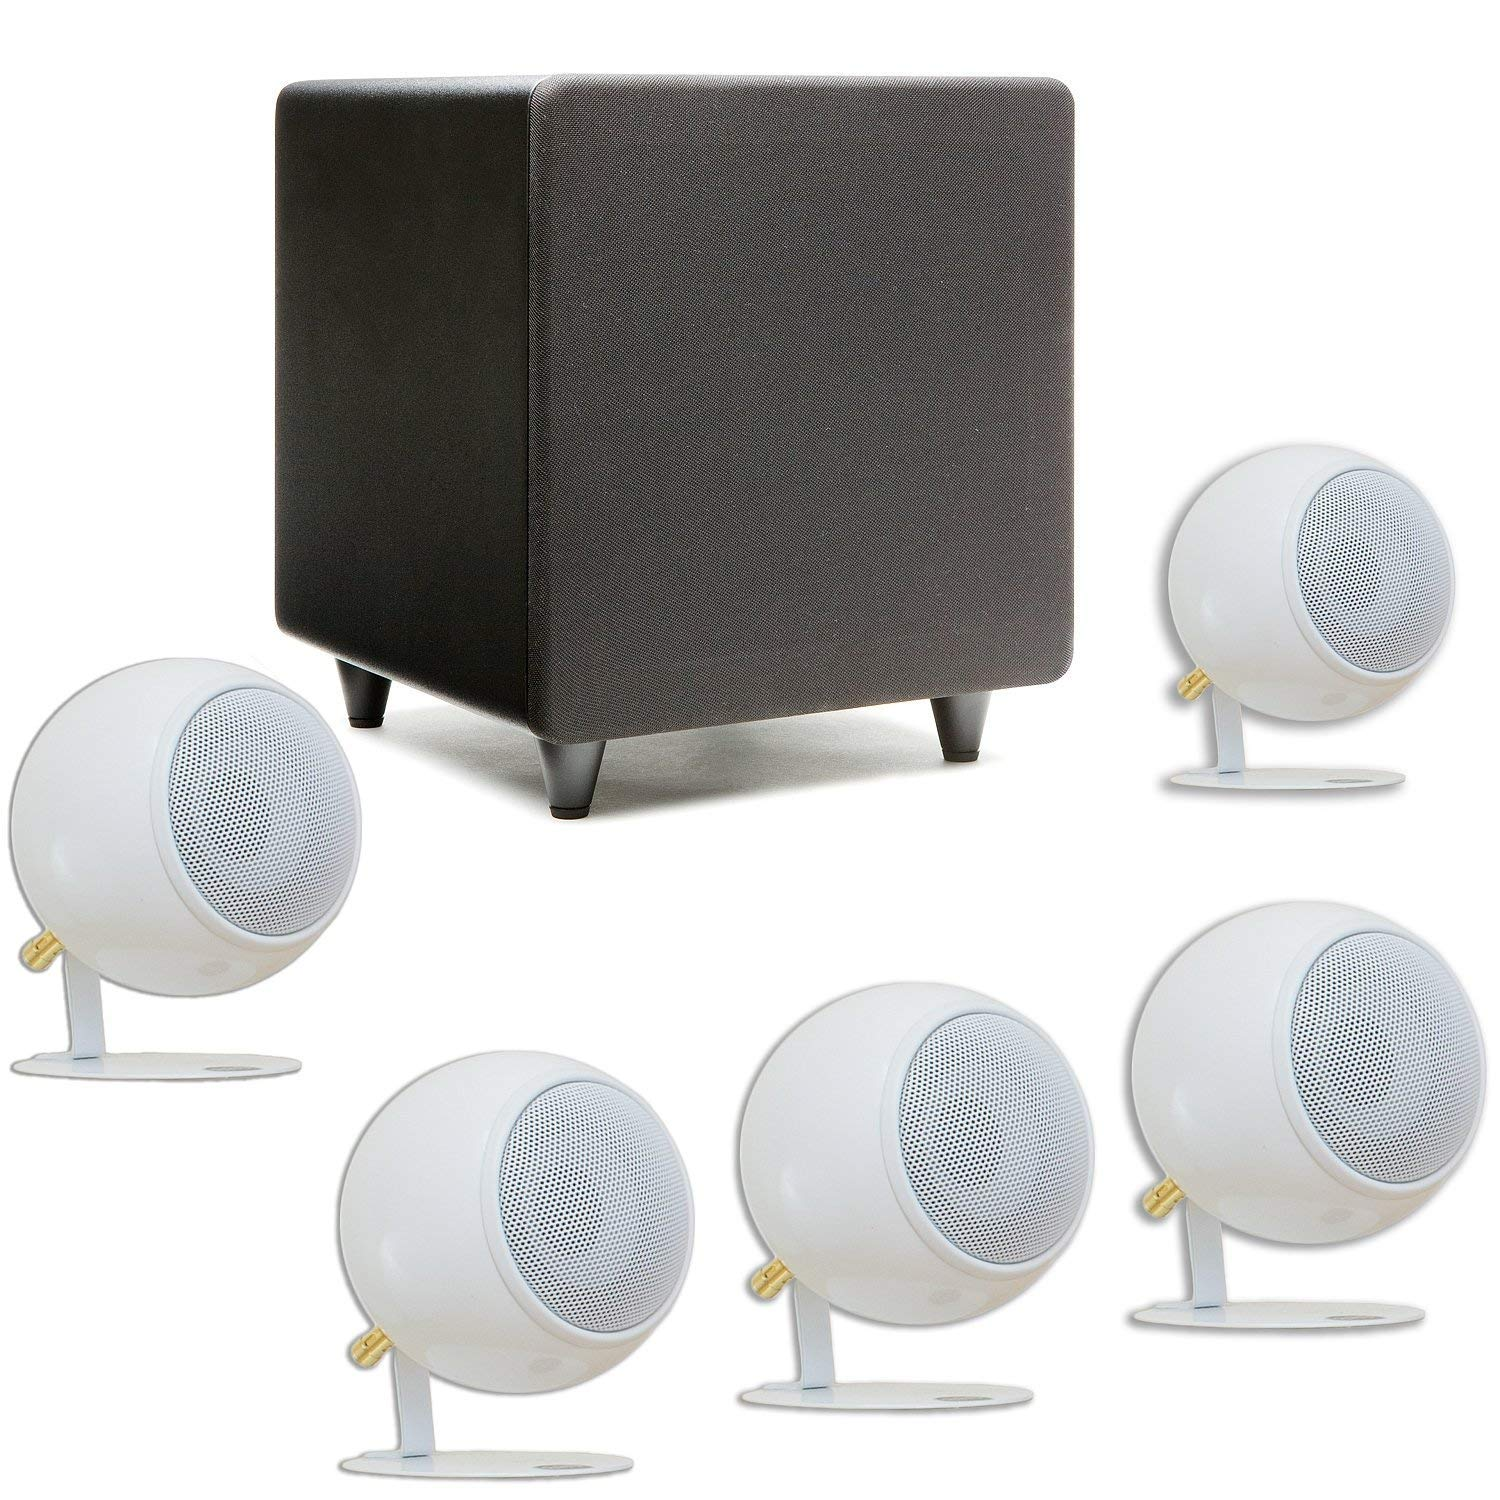 Orb Audio: Mod1 Mini 5.1 Home Theater Speaker System - Surround Sound System - Includes 5 TV Speakers and 9'' Subwoofer - Great for Movies & Music, Outperforming Larger Subwoofers - Handmade in The US